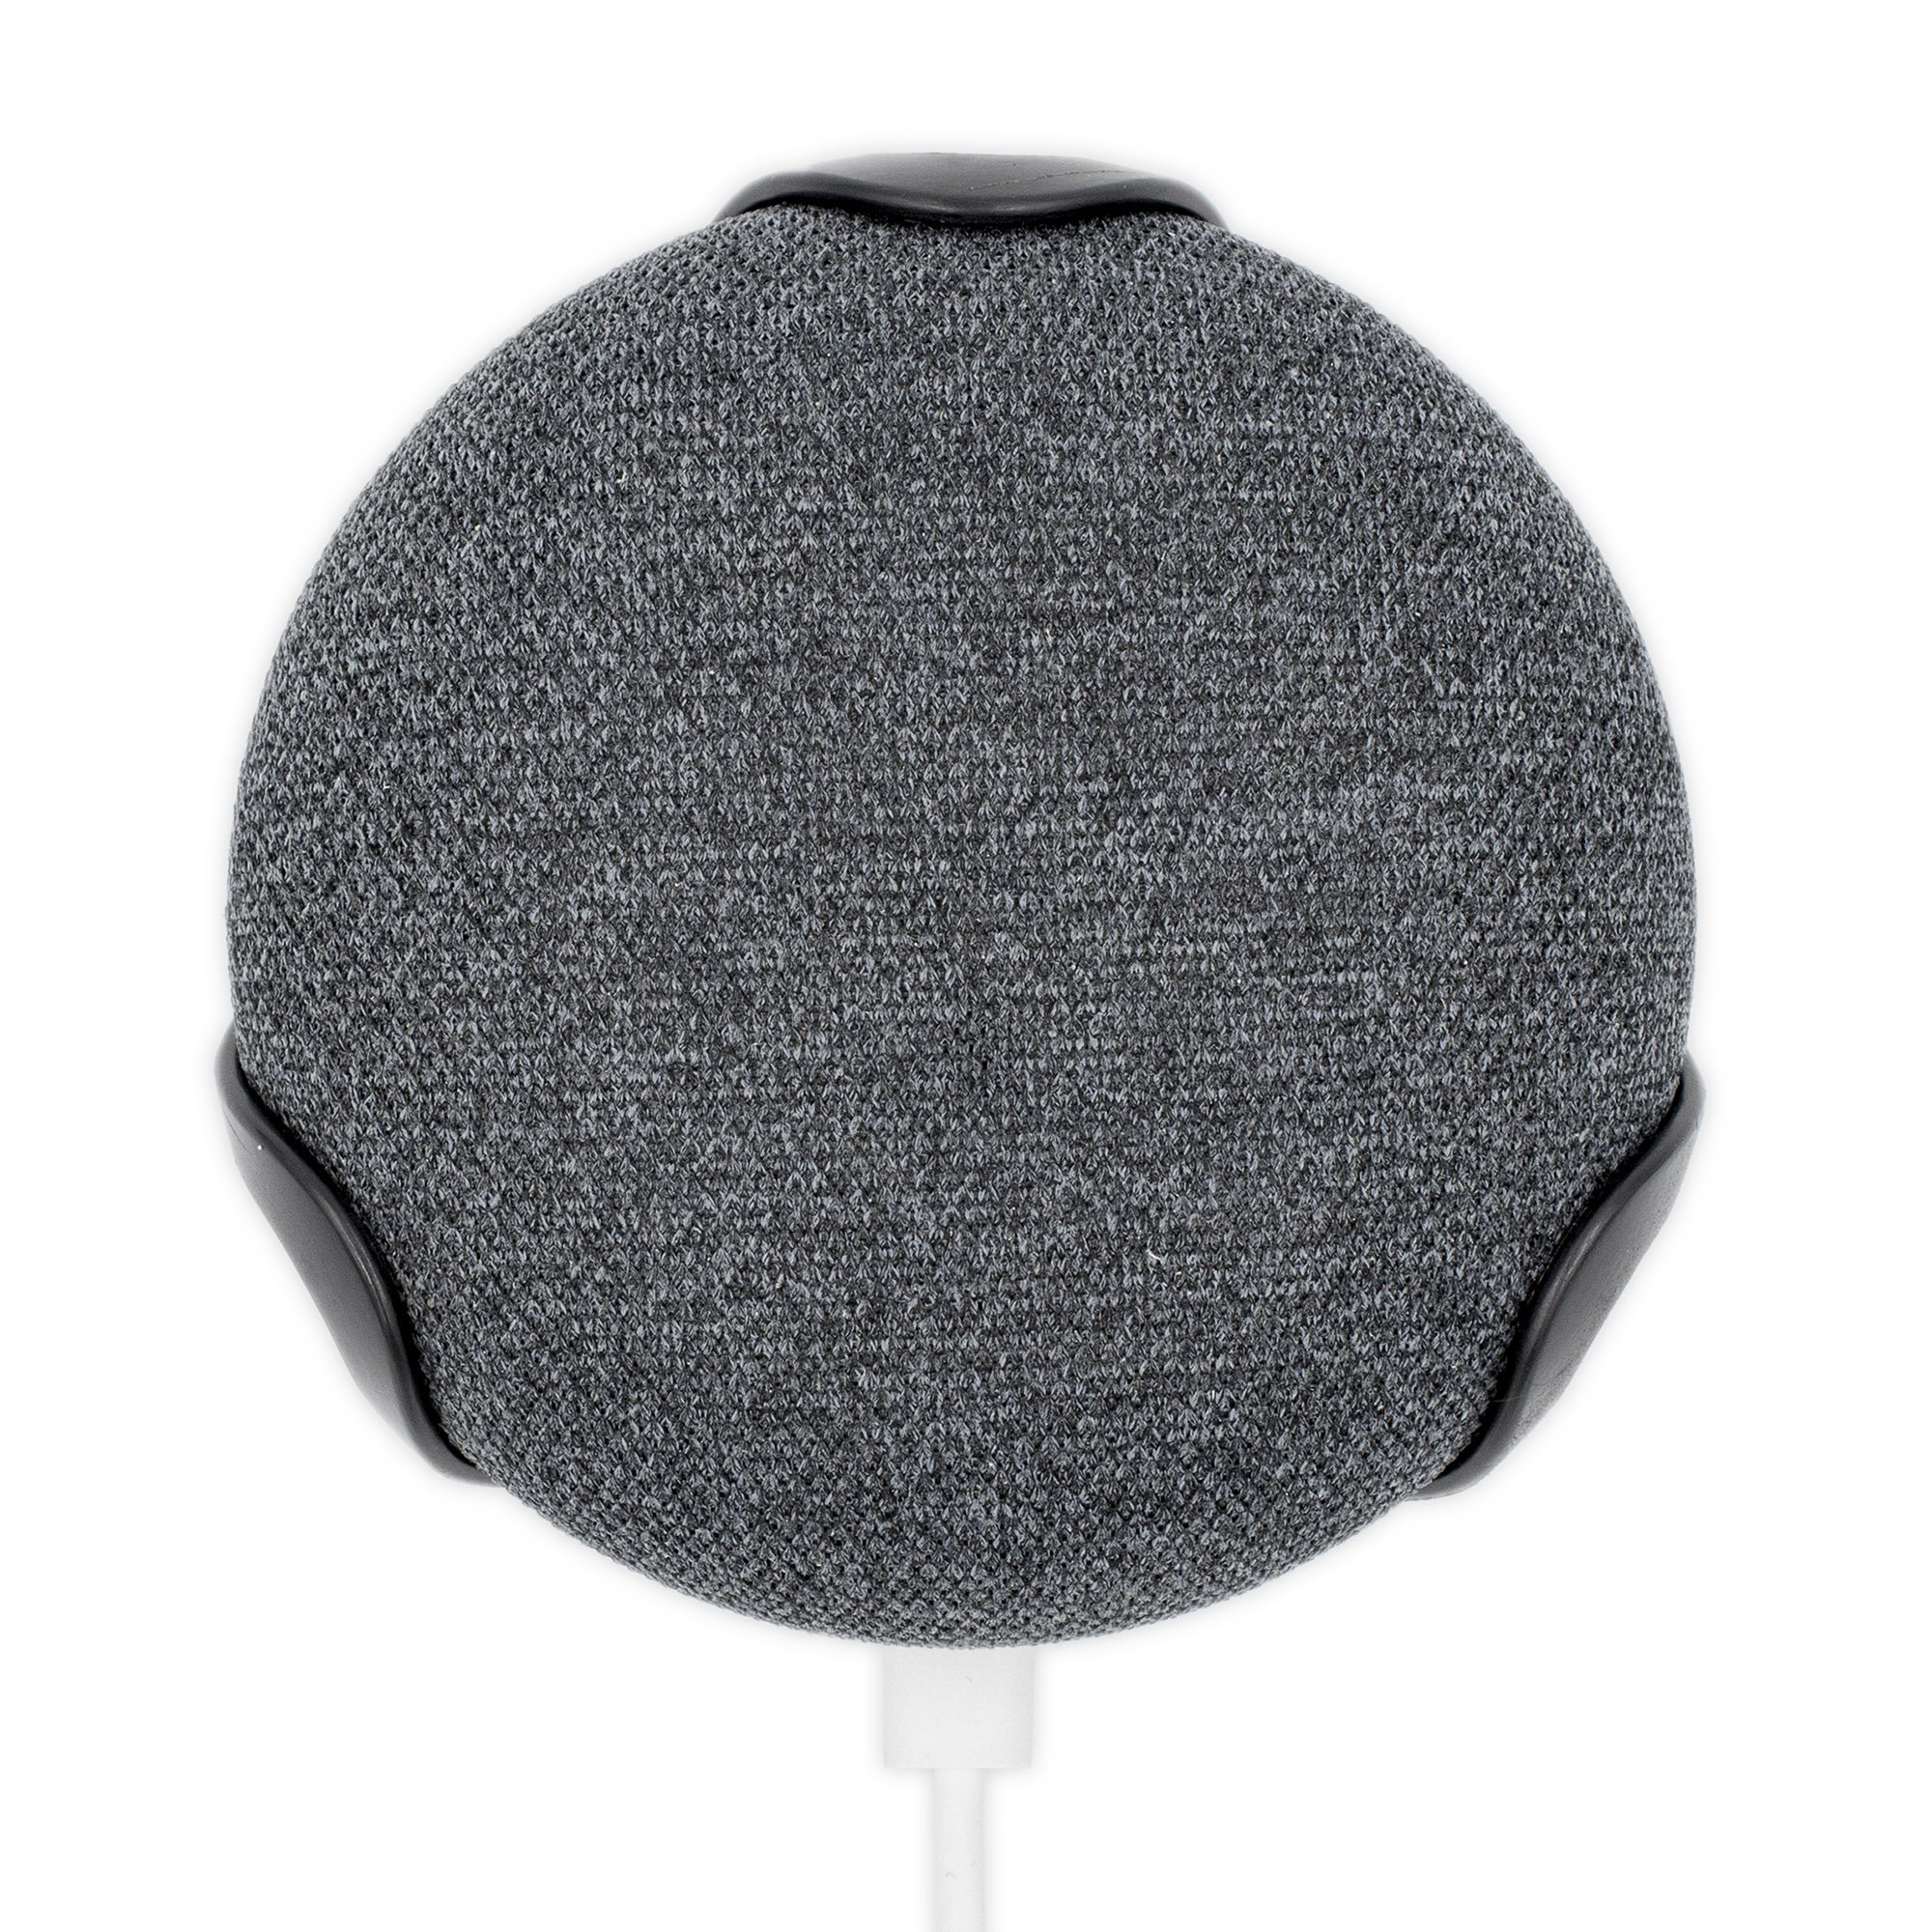 Nothing Like This Caddy - Wall Mount for Google Home Mini (Charcoal) - Designed, Engineered, Tested, and Assembled in The USA